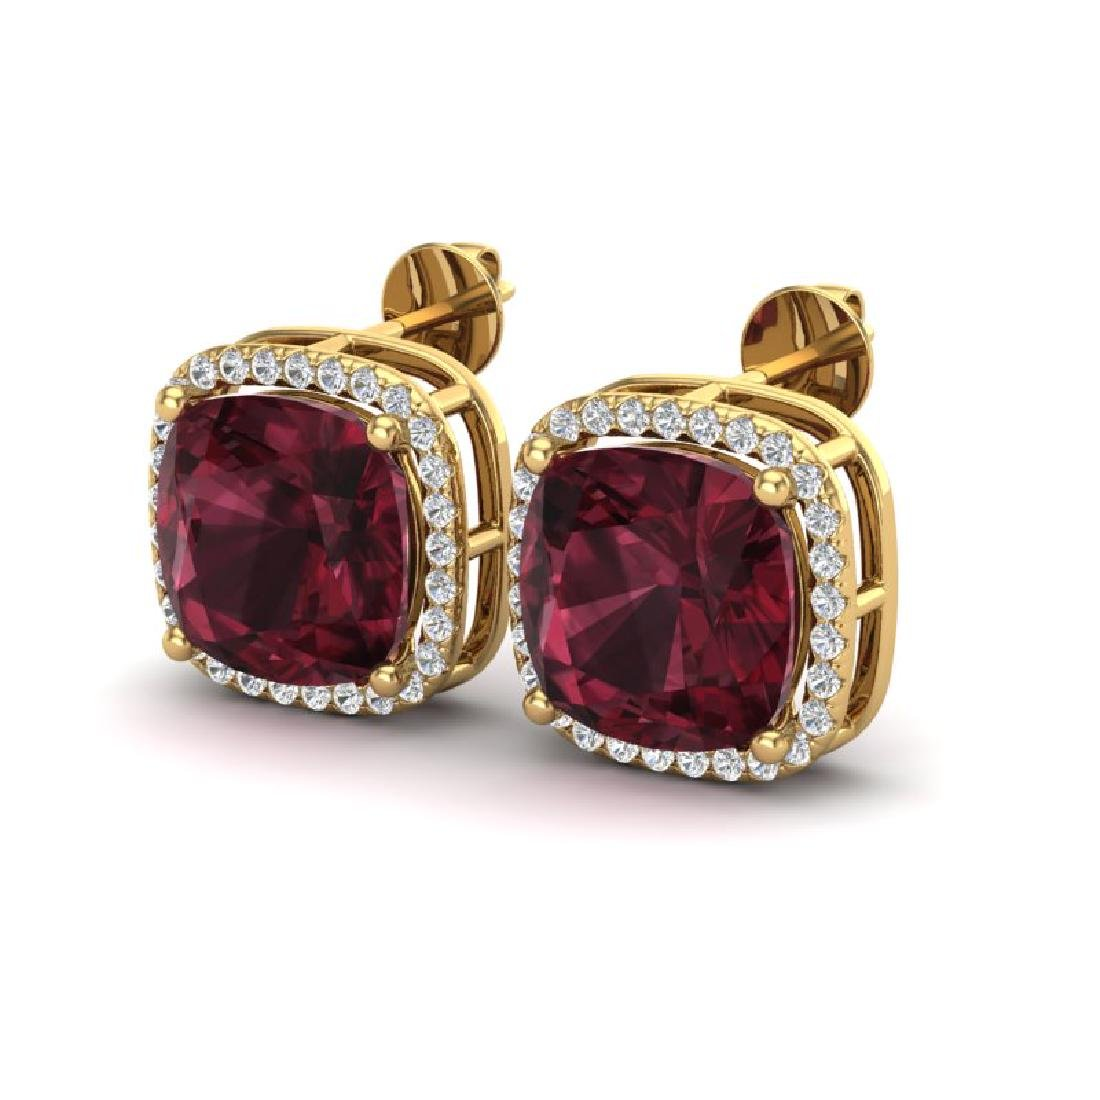 12 CTW Garnet & Micro Pave Halo VS/SI Diamond Earrings